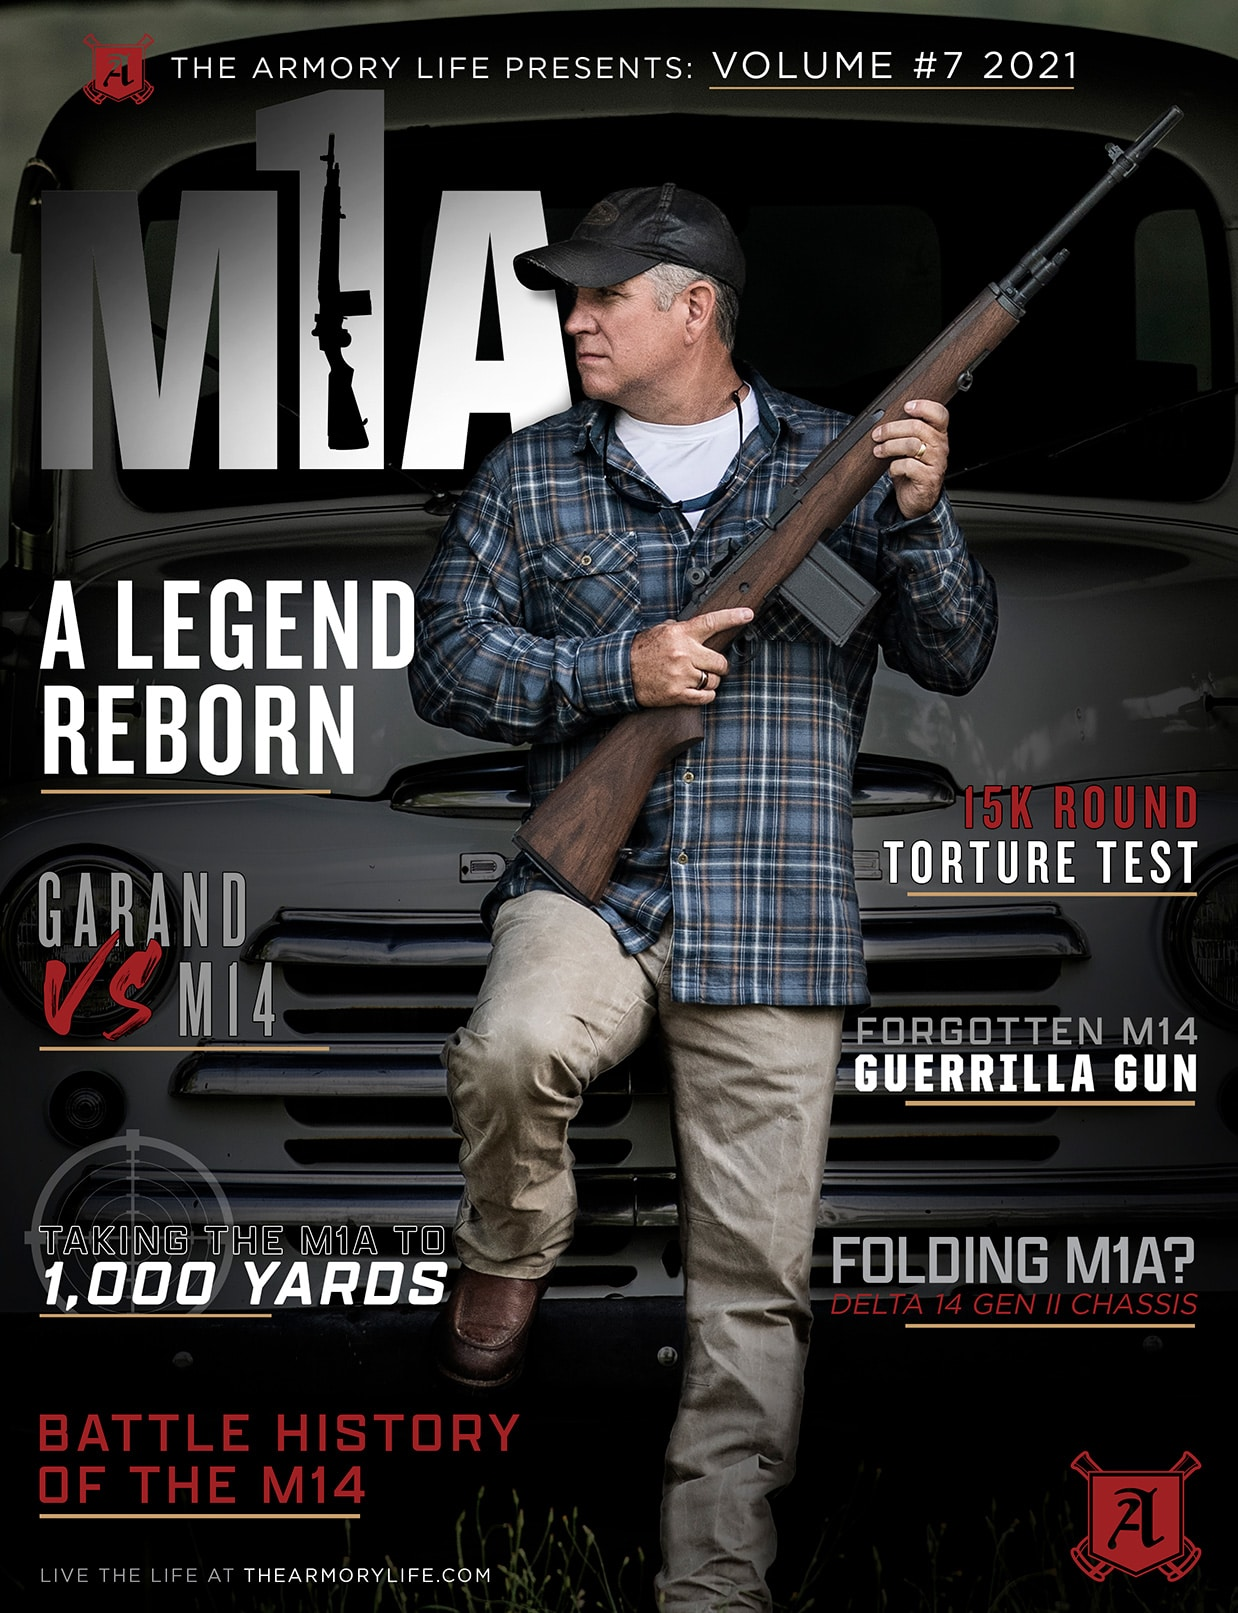 Cover for The Armory Life Digital Magazine Volume 7: M1A